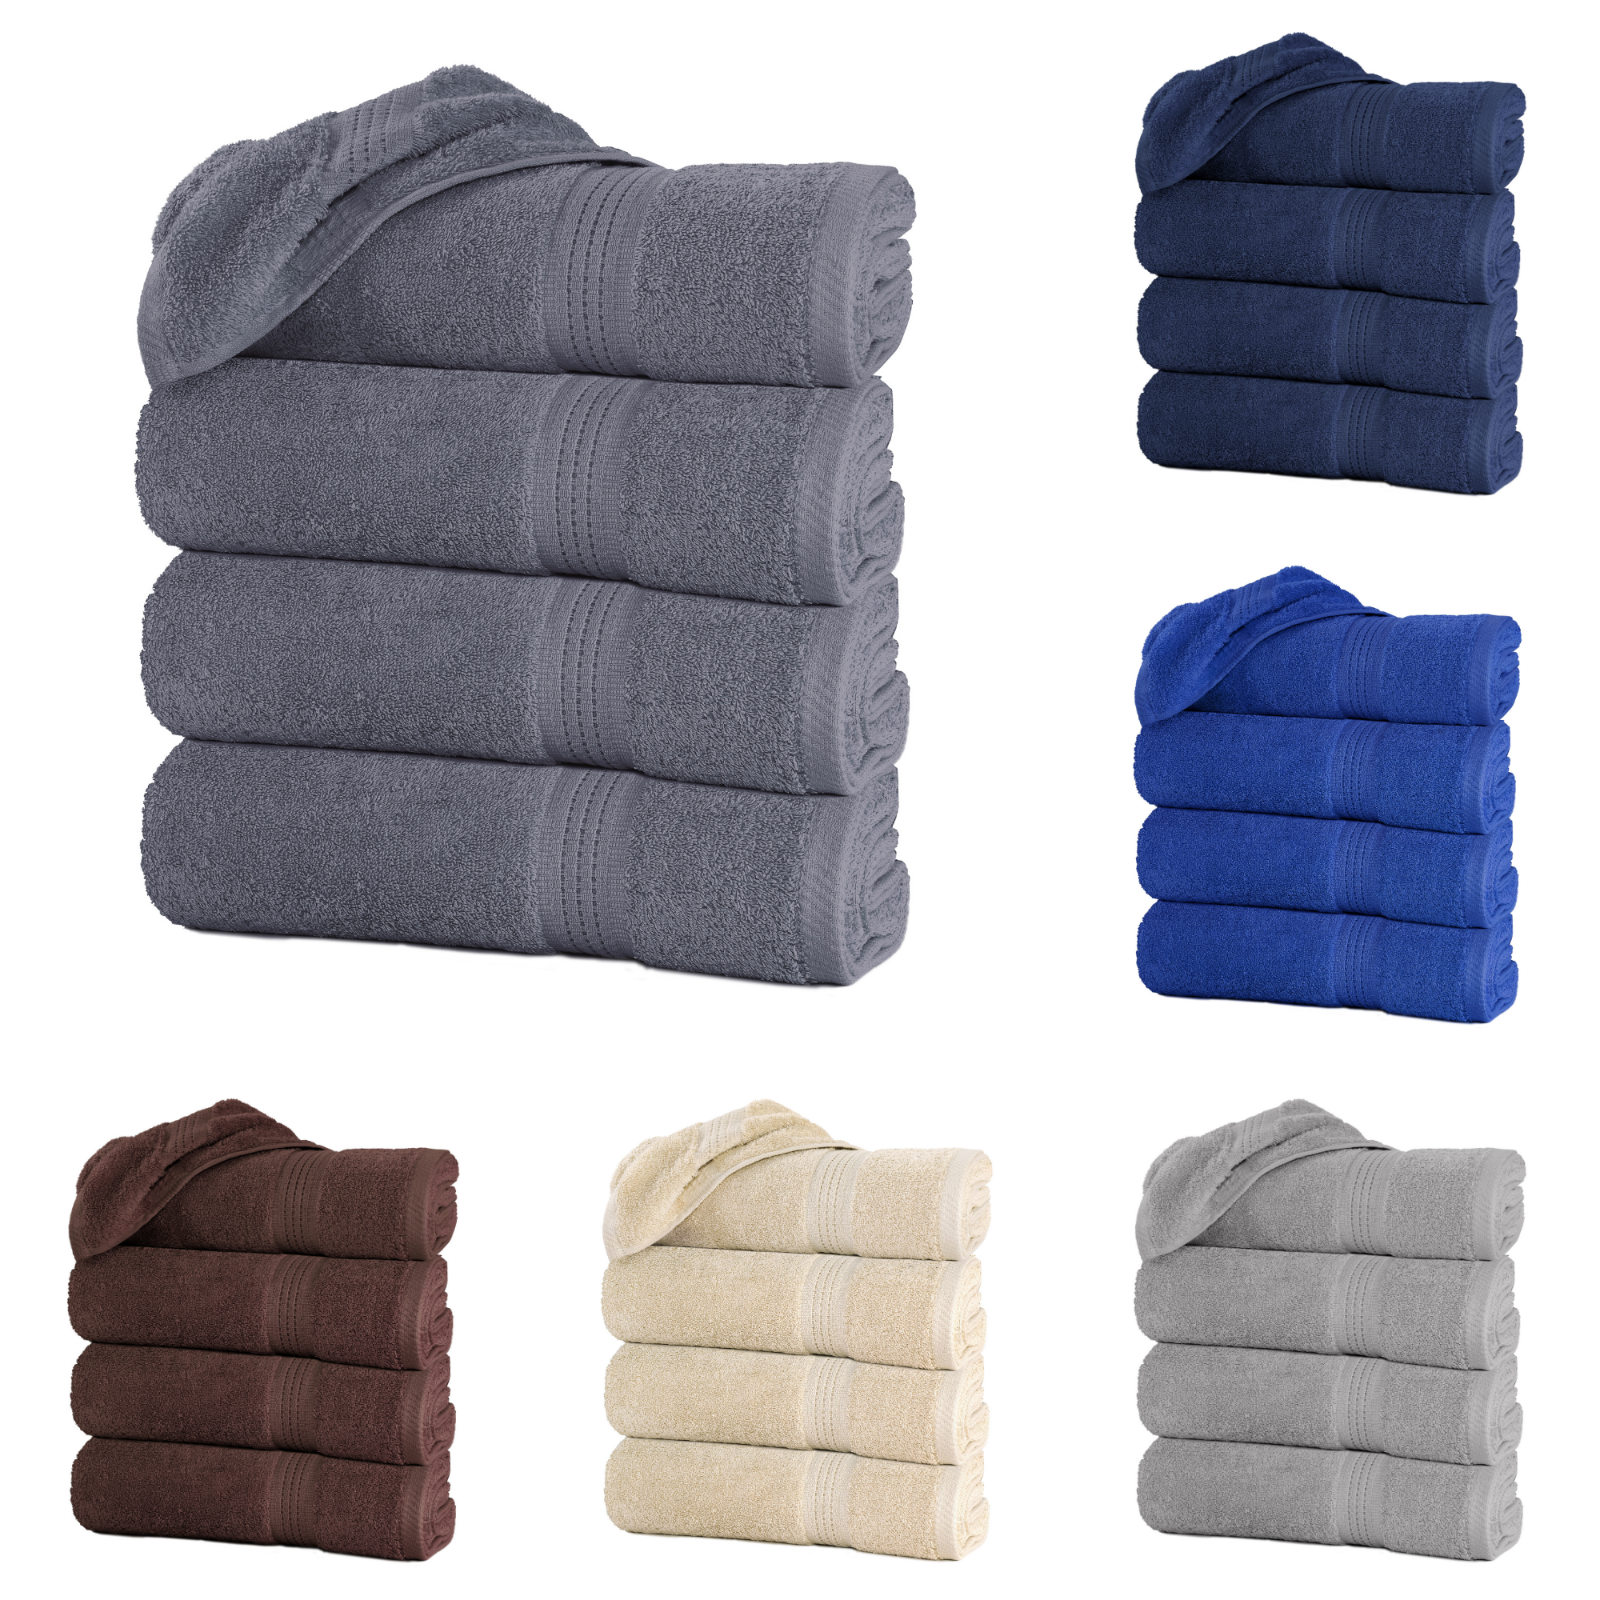 Large Bath Towel Packs Sets Sheets 100 Cotton 27x58 450 Gsm